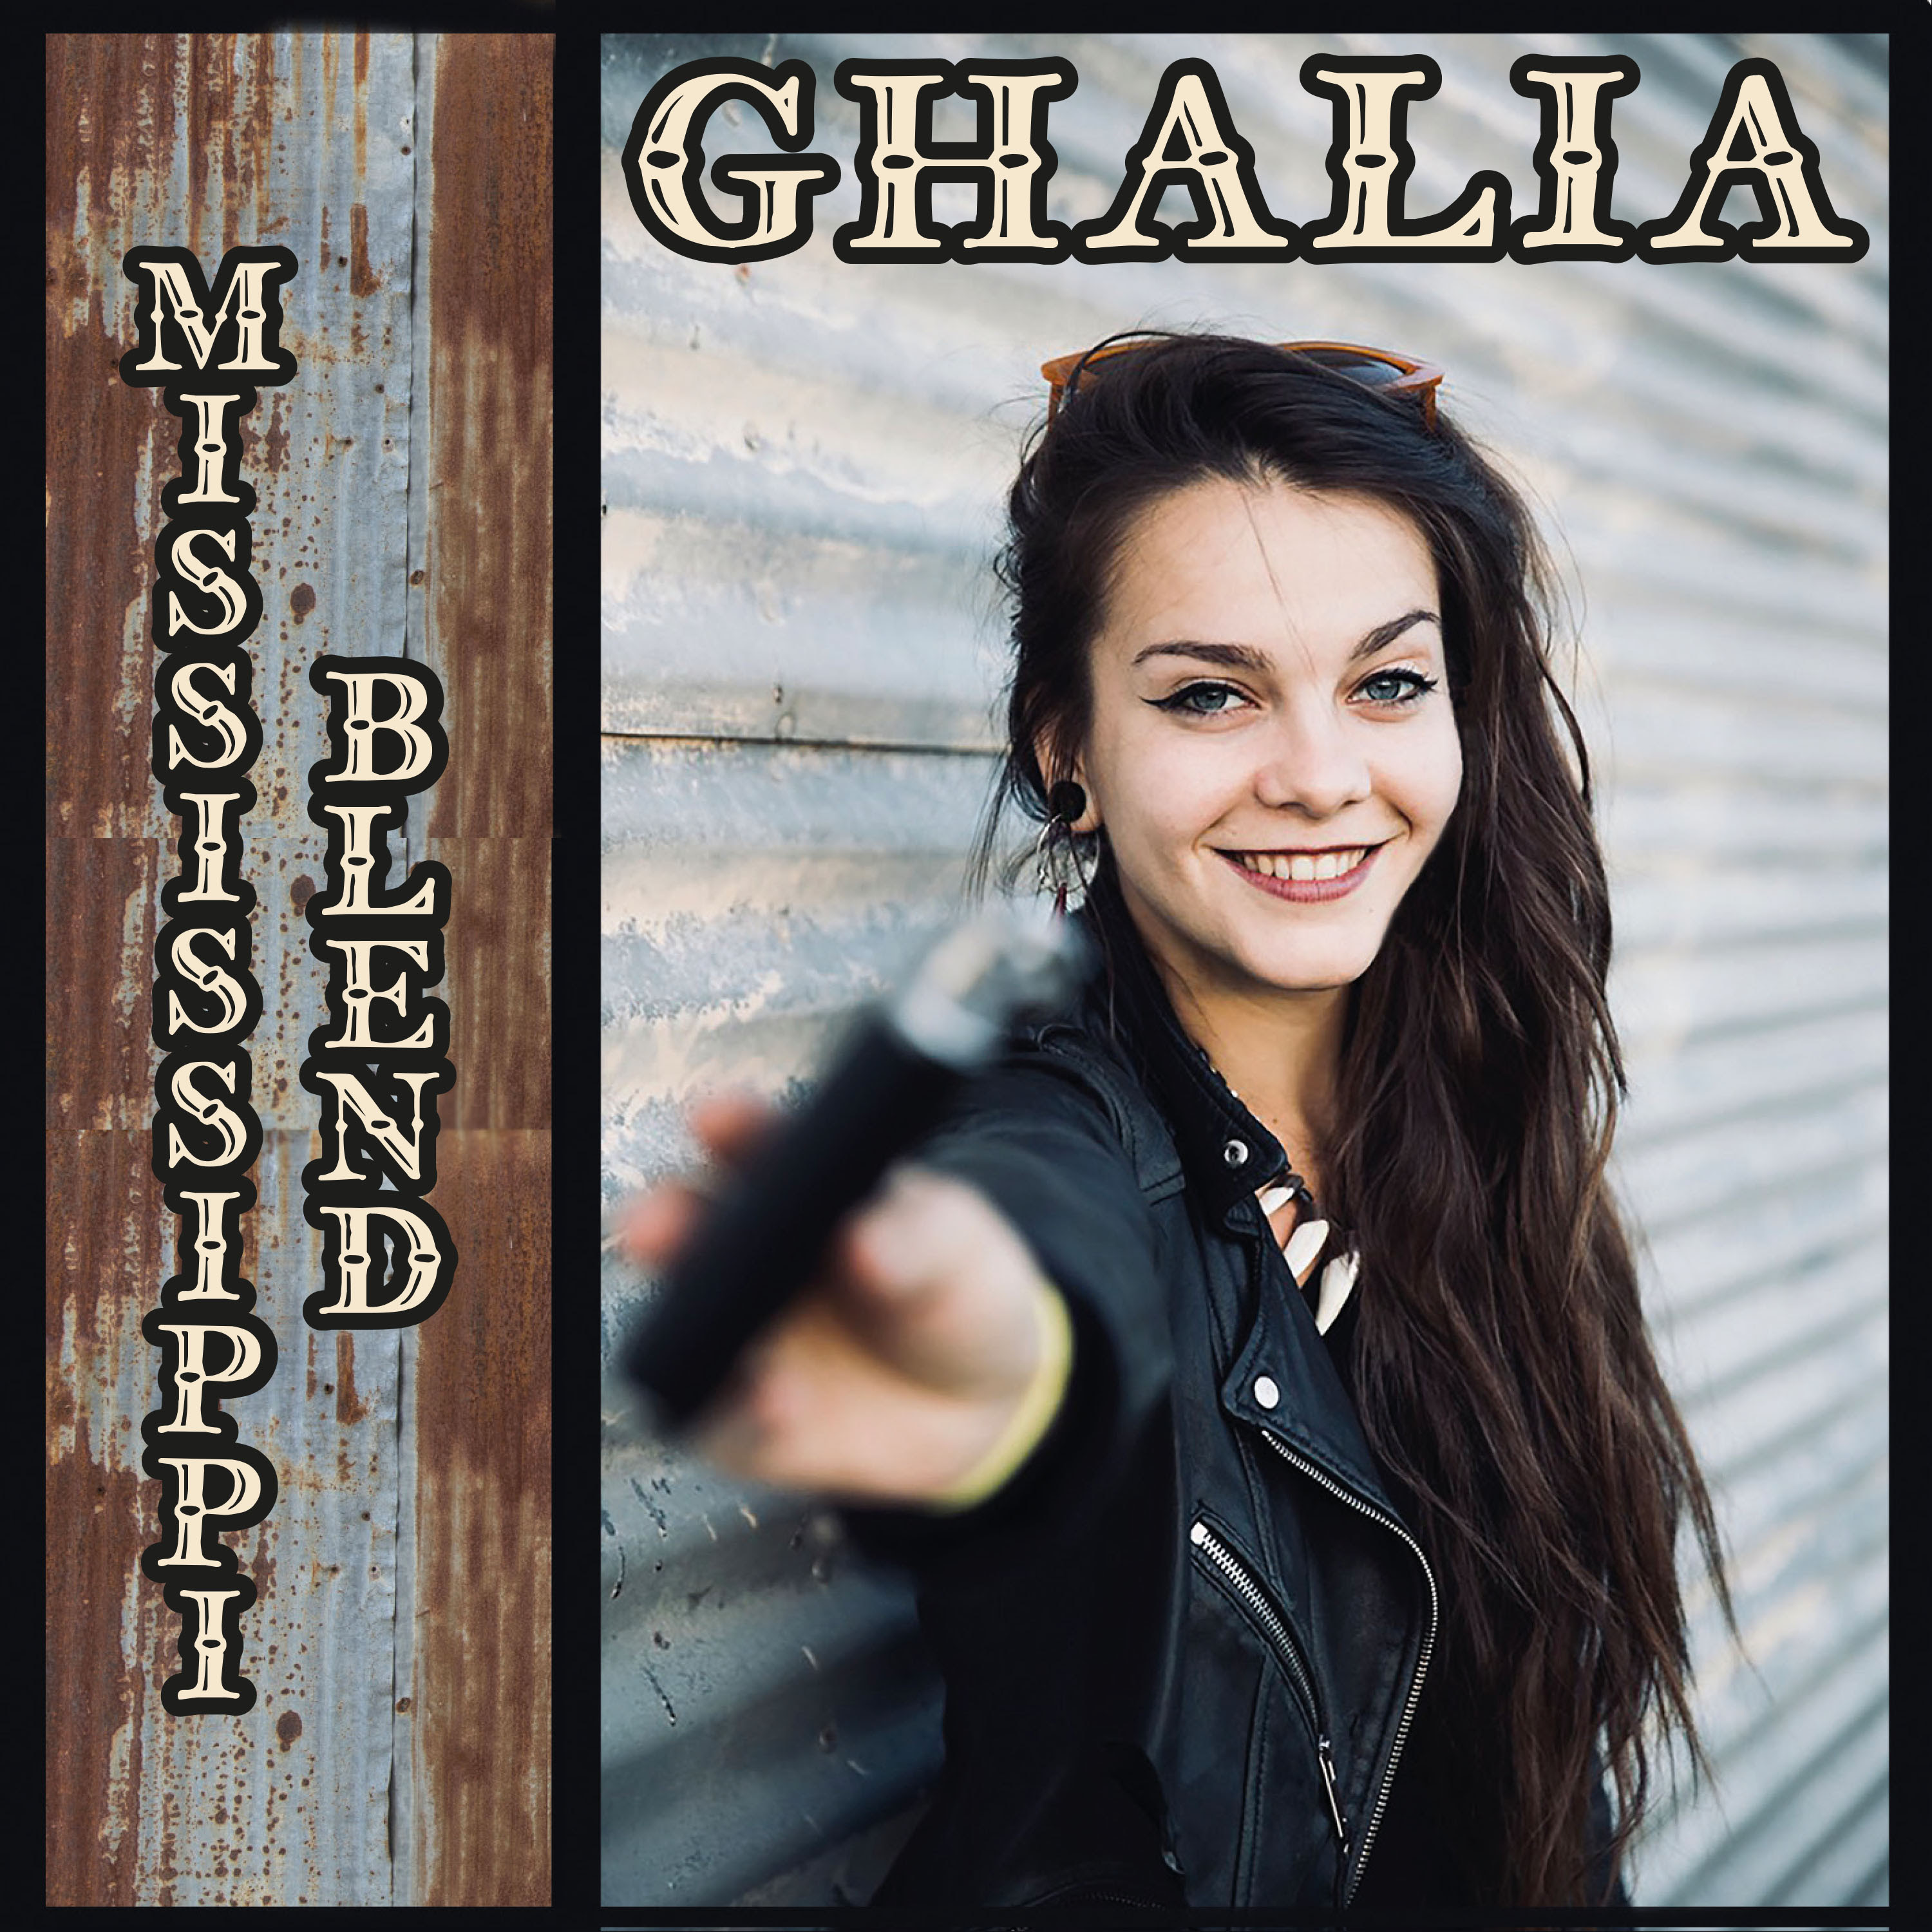 Cody Dickinson, Watermelon Slim, Cedric Burnside & Lightnin' Malcolm join Roots Musician Ghalia on her new album